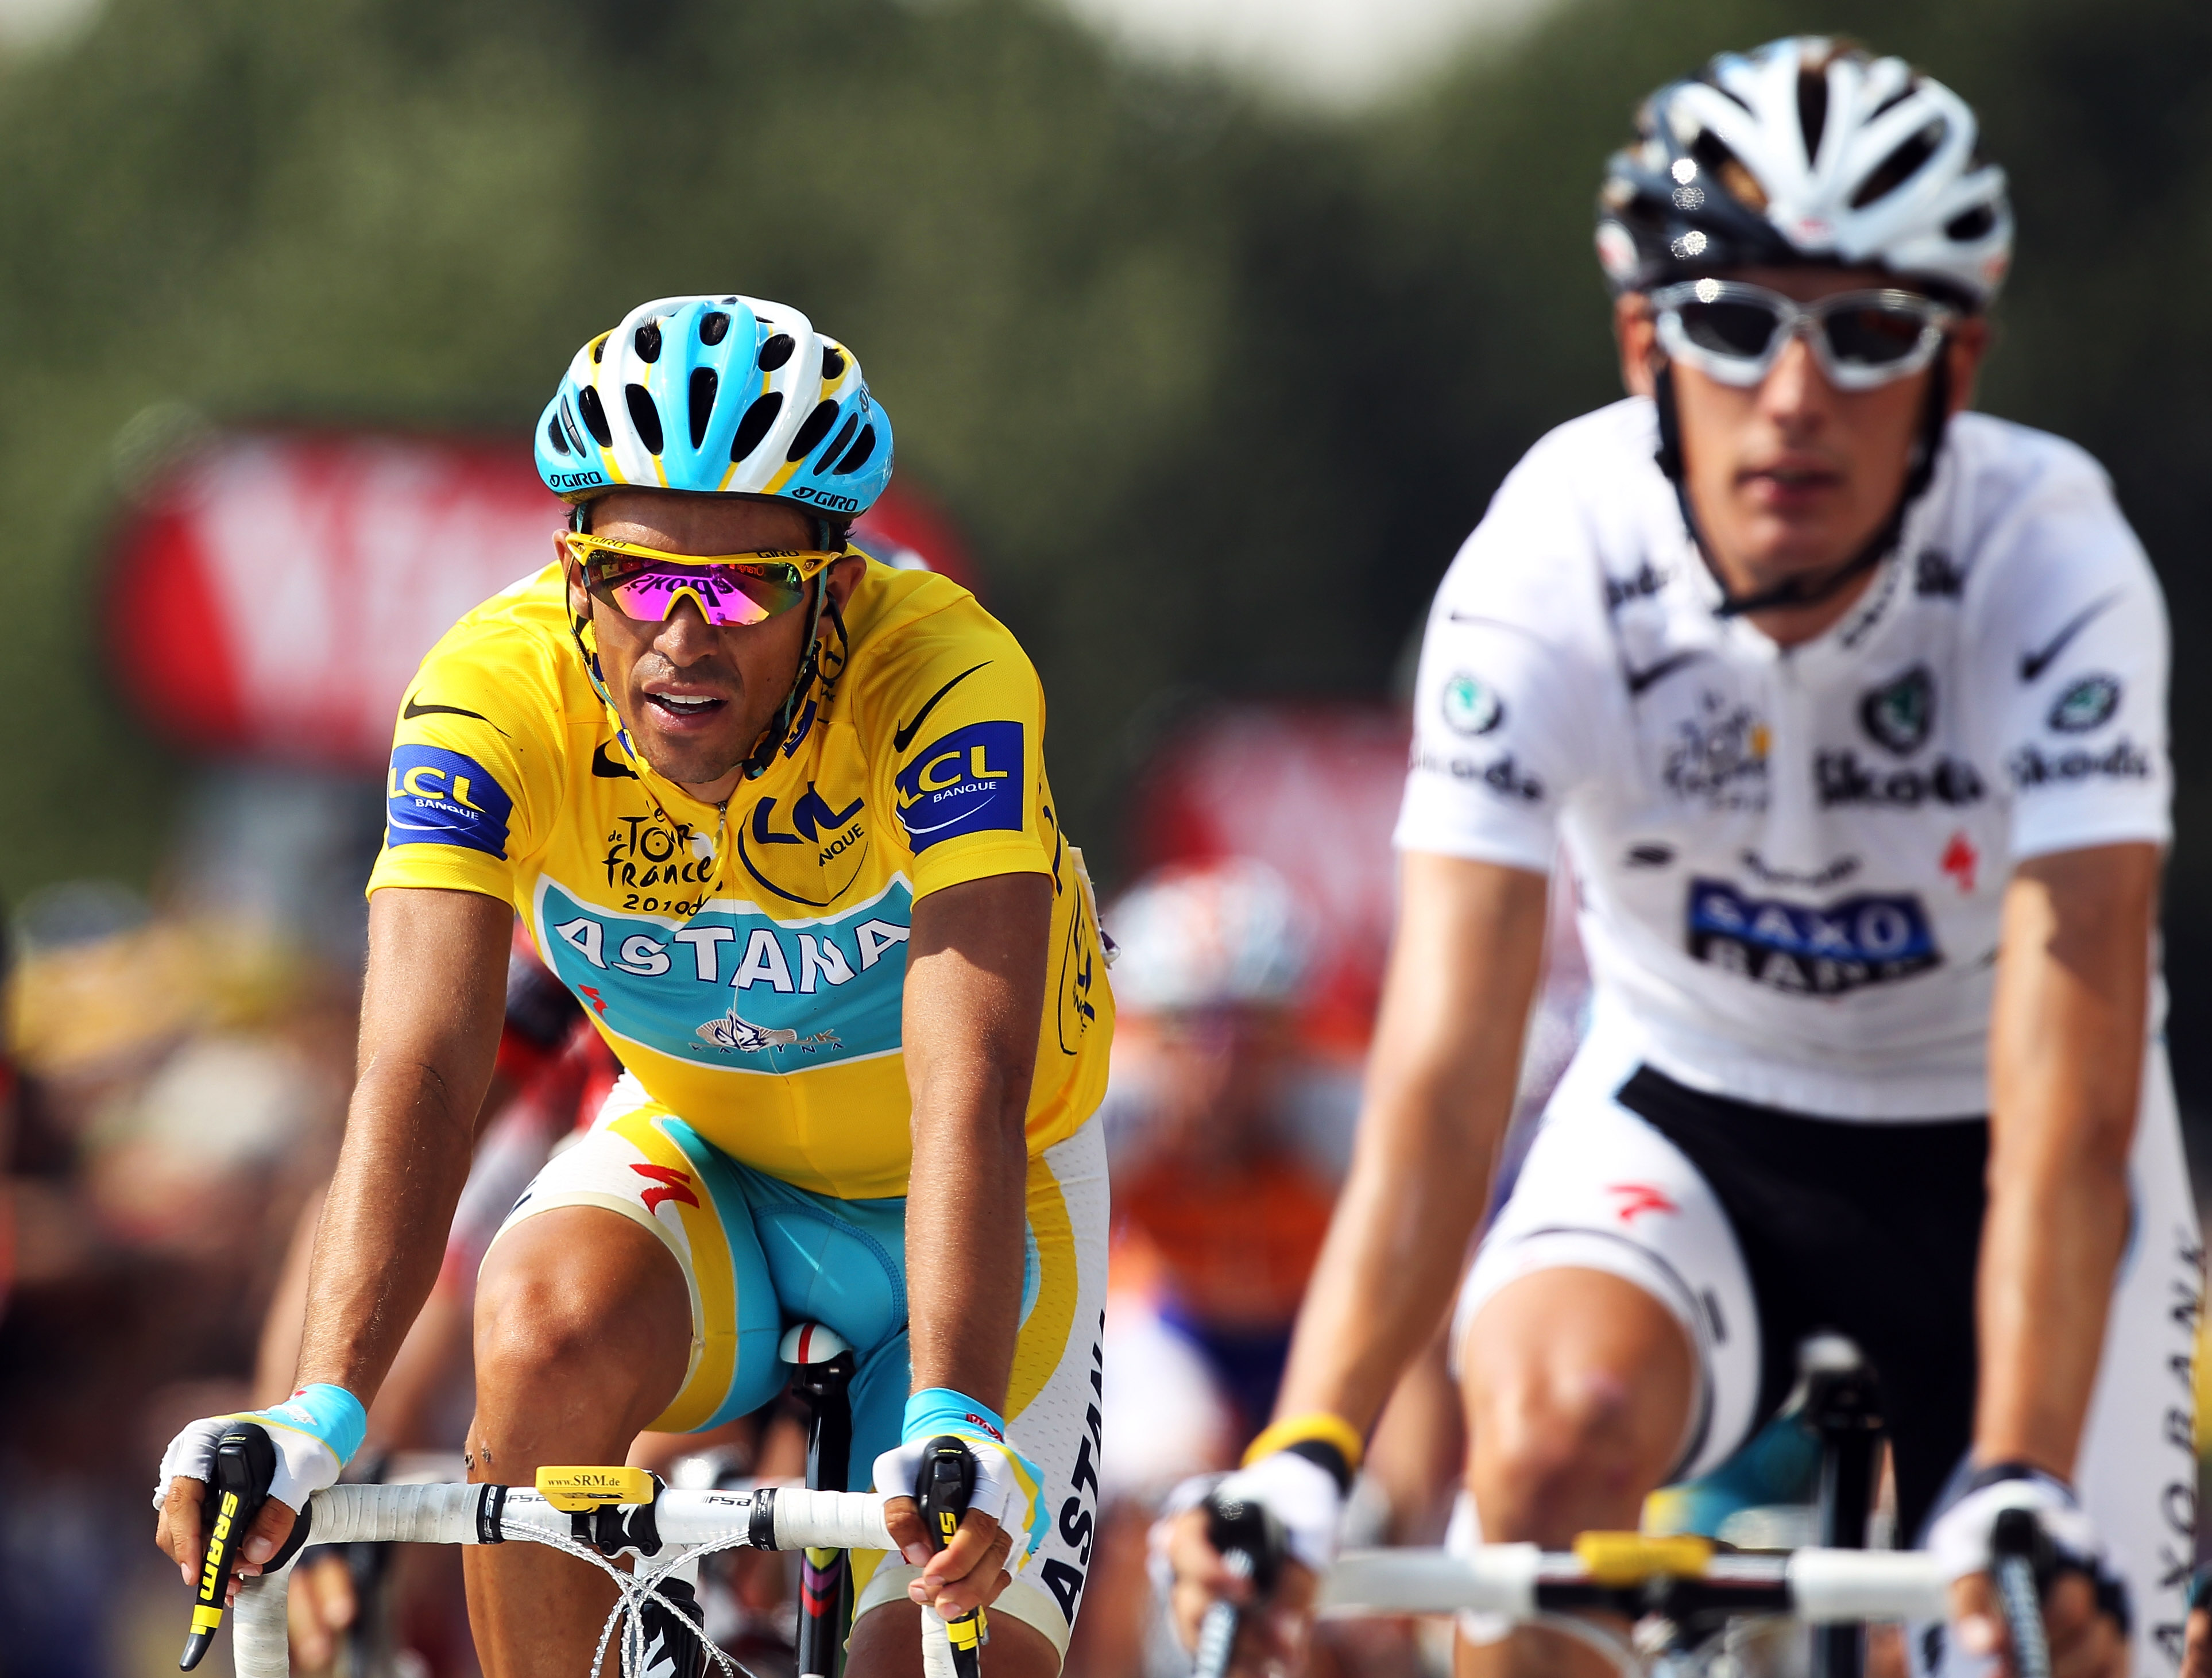 PAU, FRANCE - JULY 20:  Race leader Alberto Contador (l) of Spain and the Astana team rides over the finish line alongside second placed Andy Schleck of Luxembourg and Team Saxo Bank on stage sixteen of the 2010 Tour de France from Bagneres-de-Luchon to P